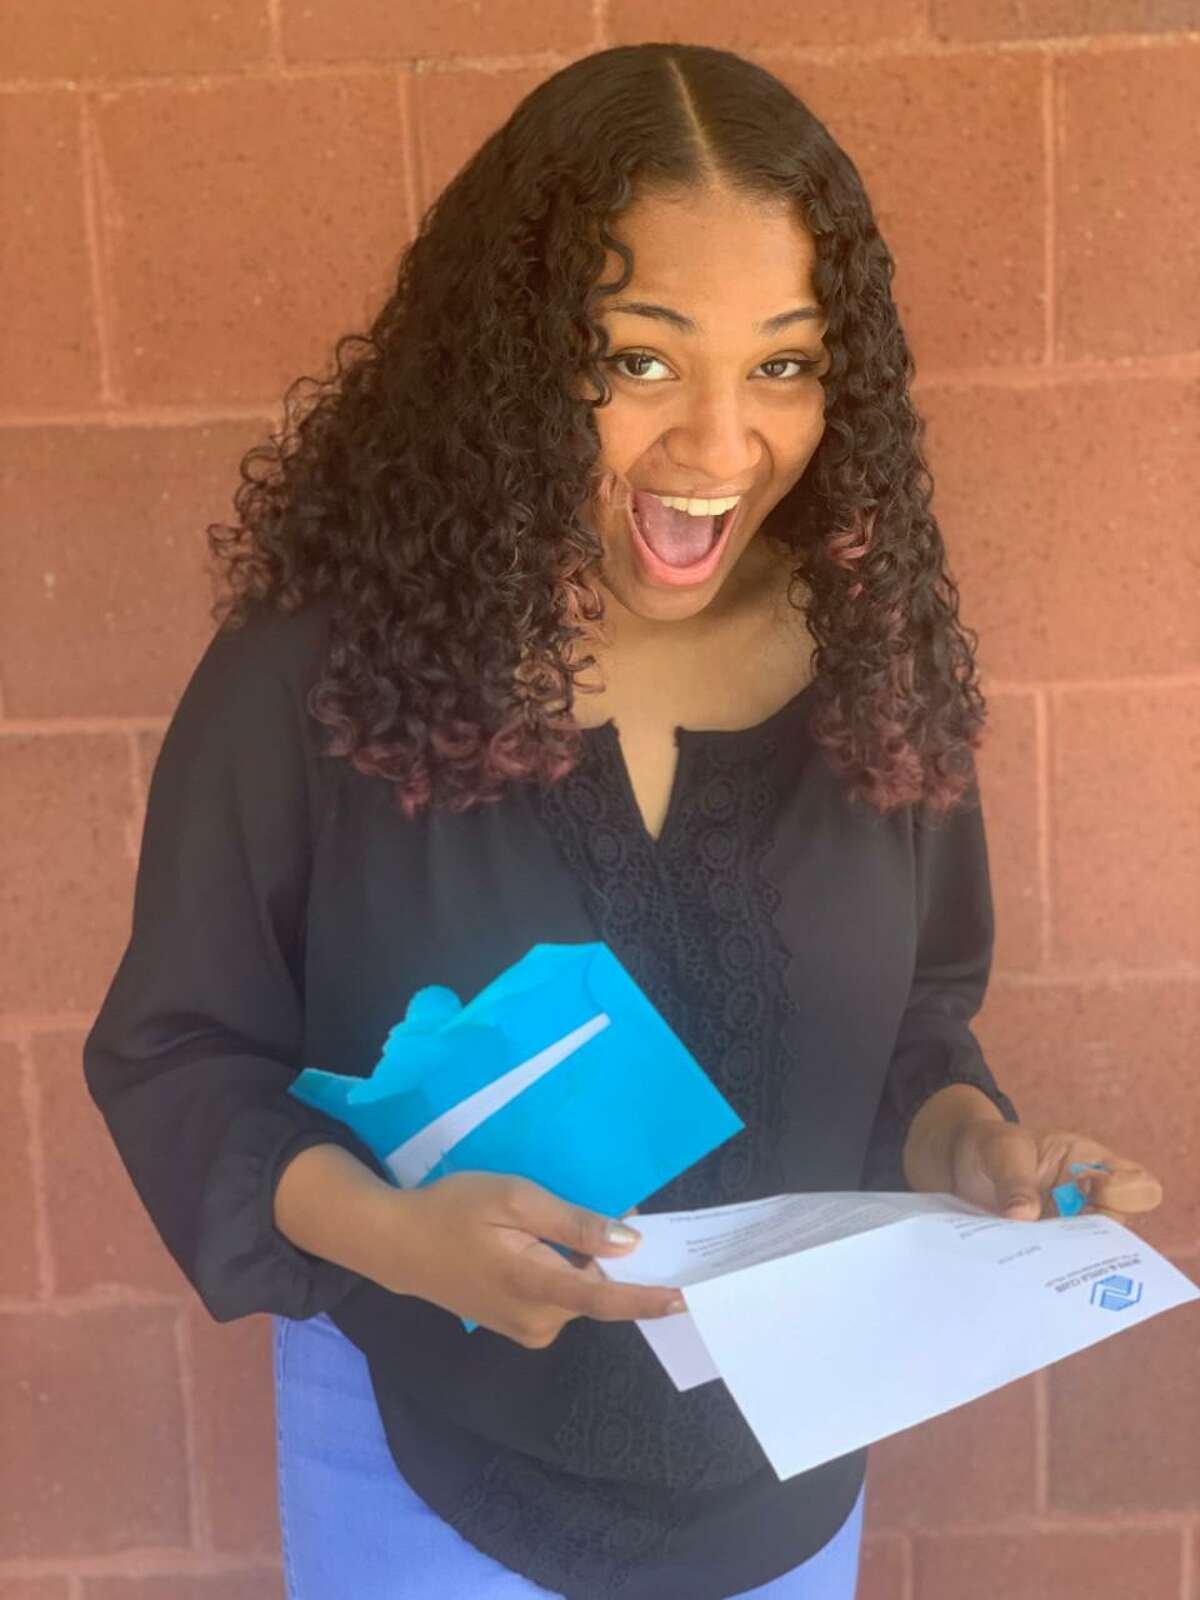 Boys & Girl's Club's 2021 Youth of the Year Siommorra Hill, who recently received one of the club's annual scholarships, plans to attend New York University to pursue theater.